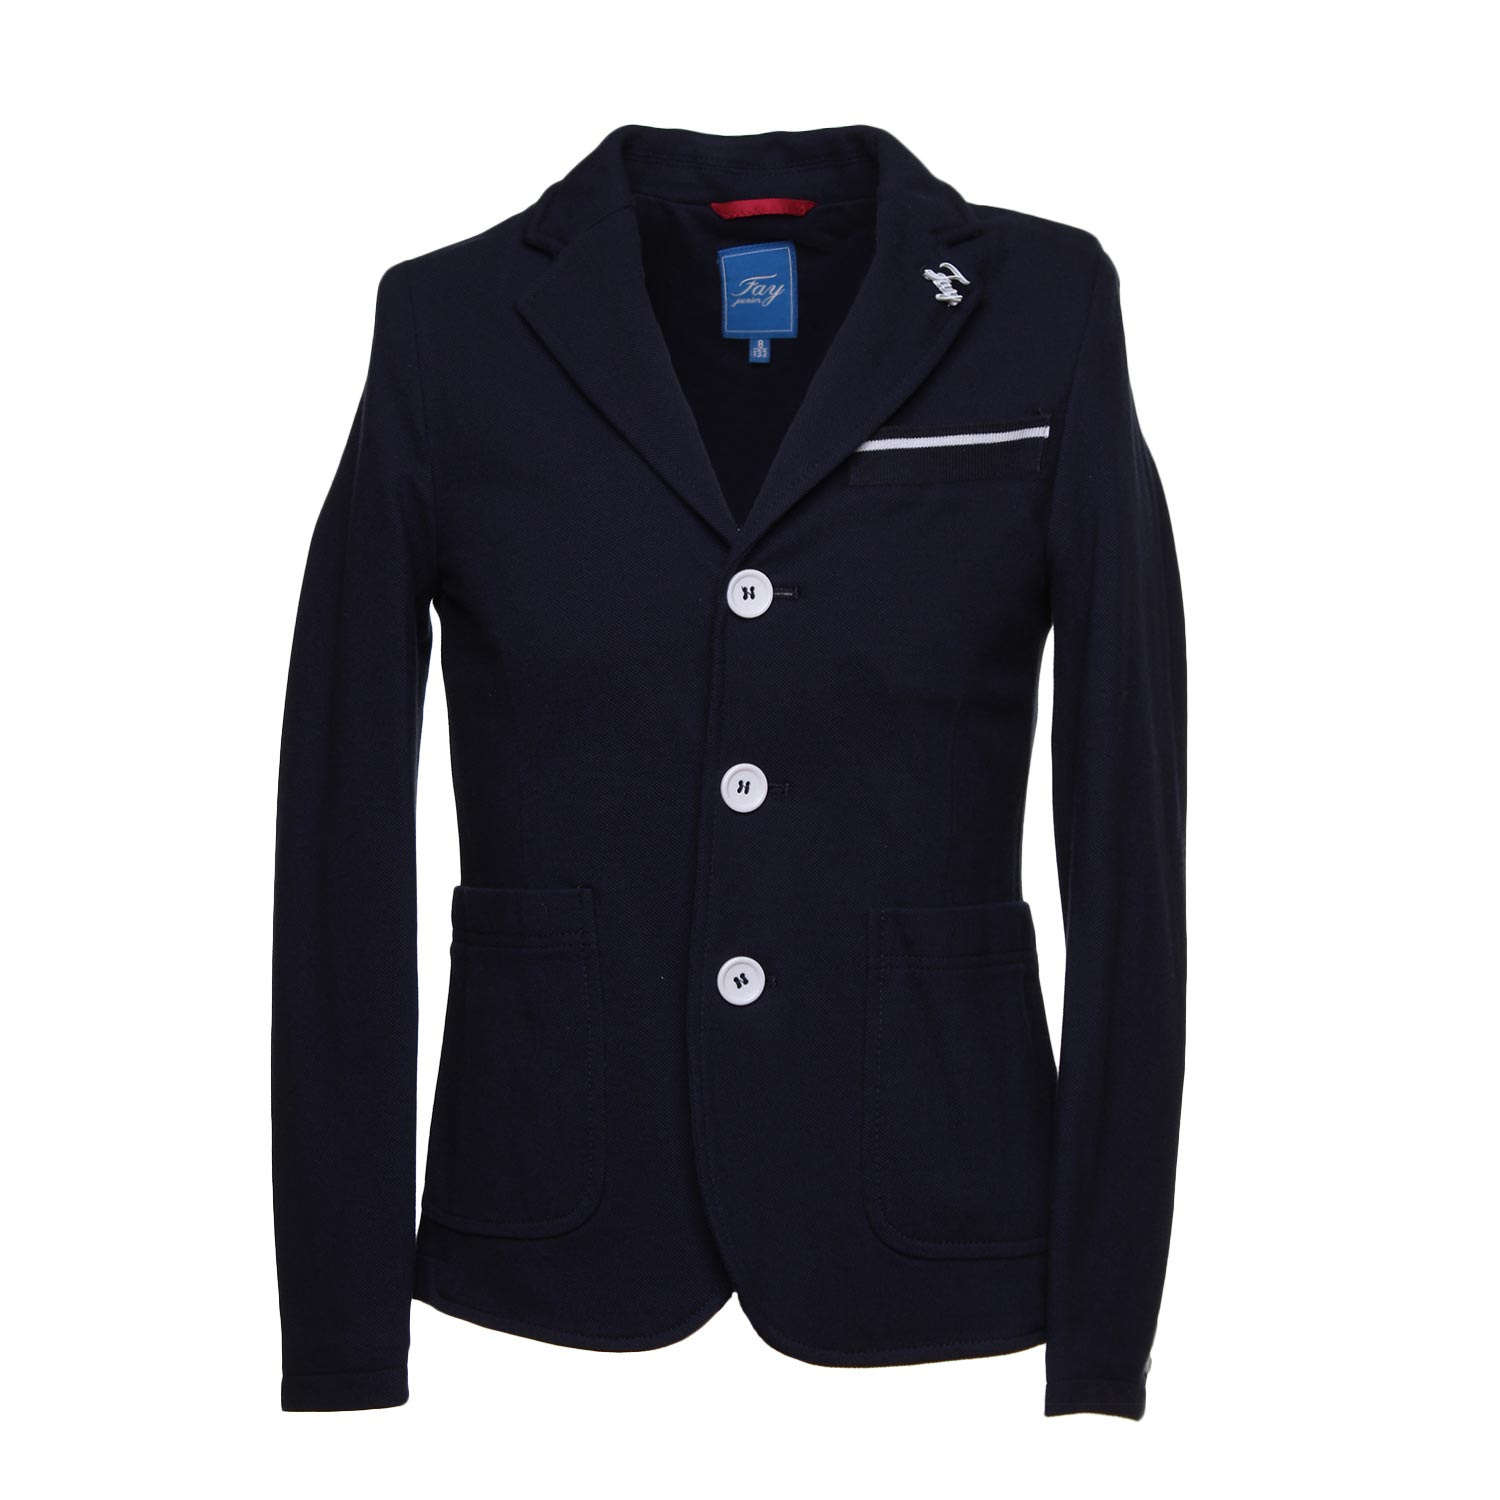 finest selection 8f693 4752d Giacca Blu Navy Bambino